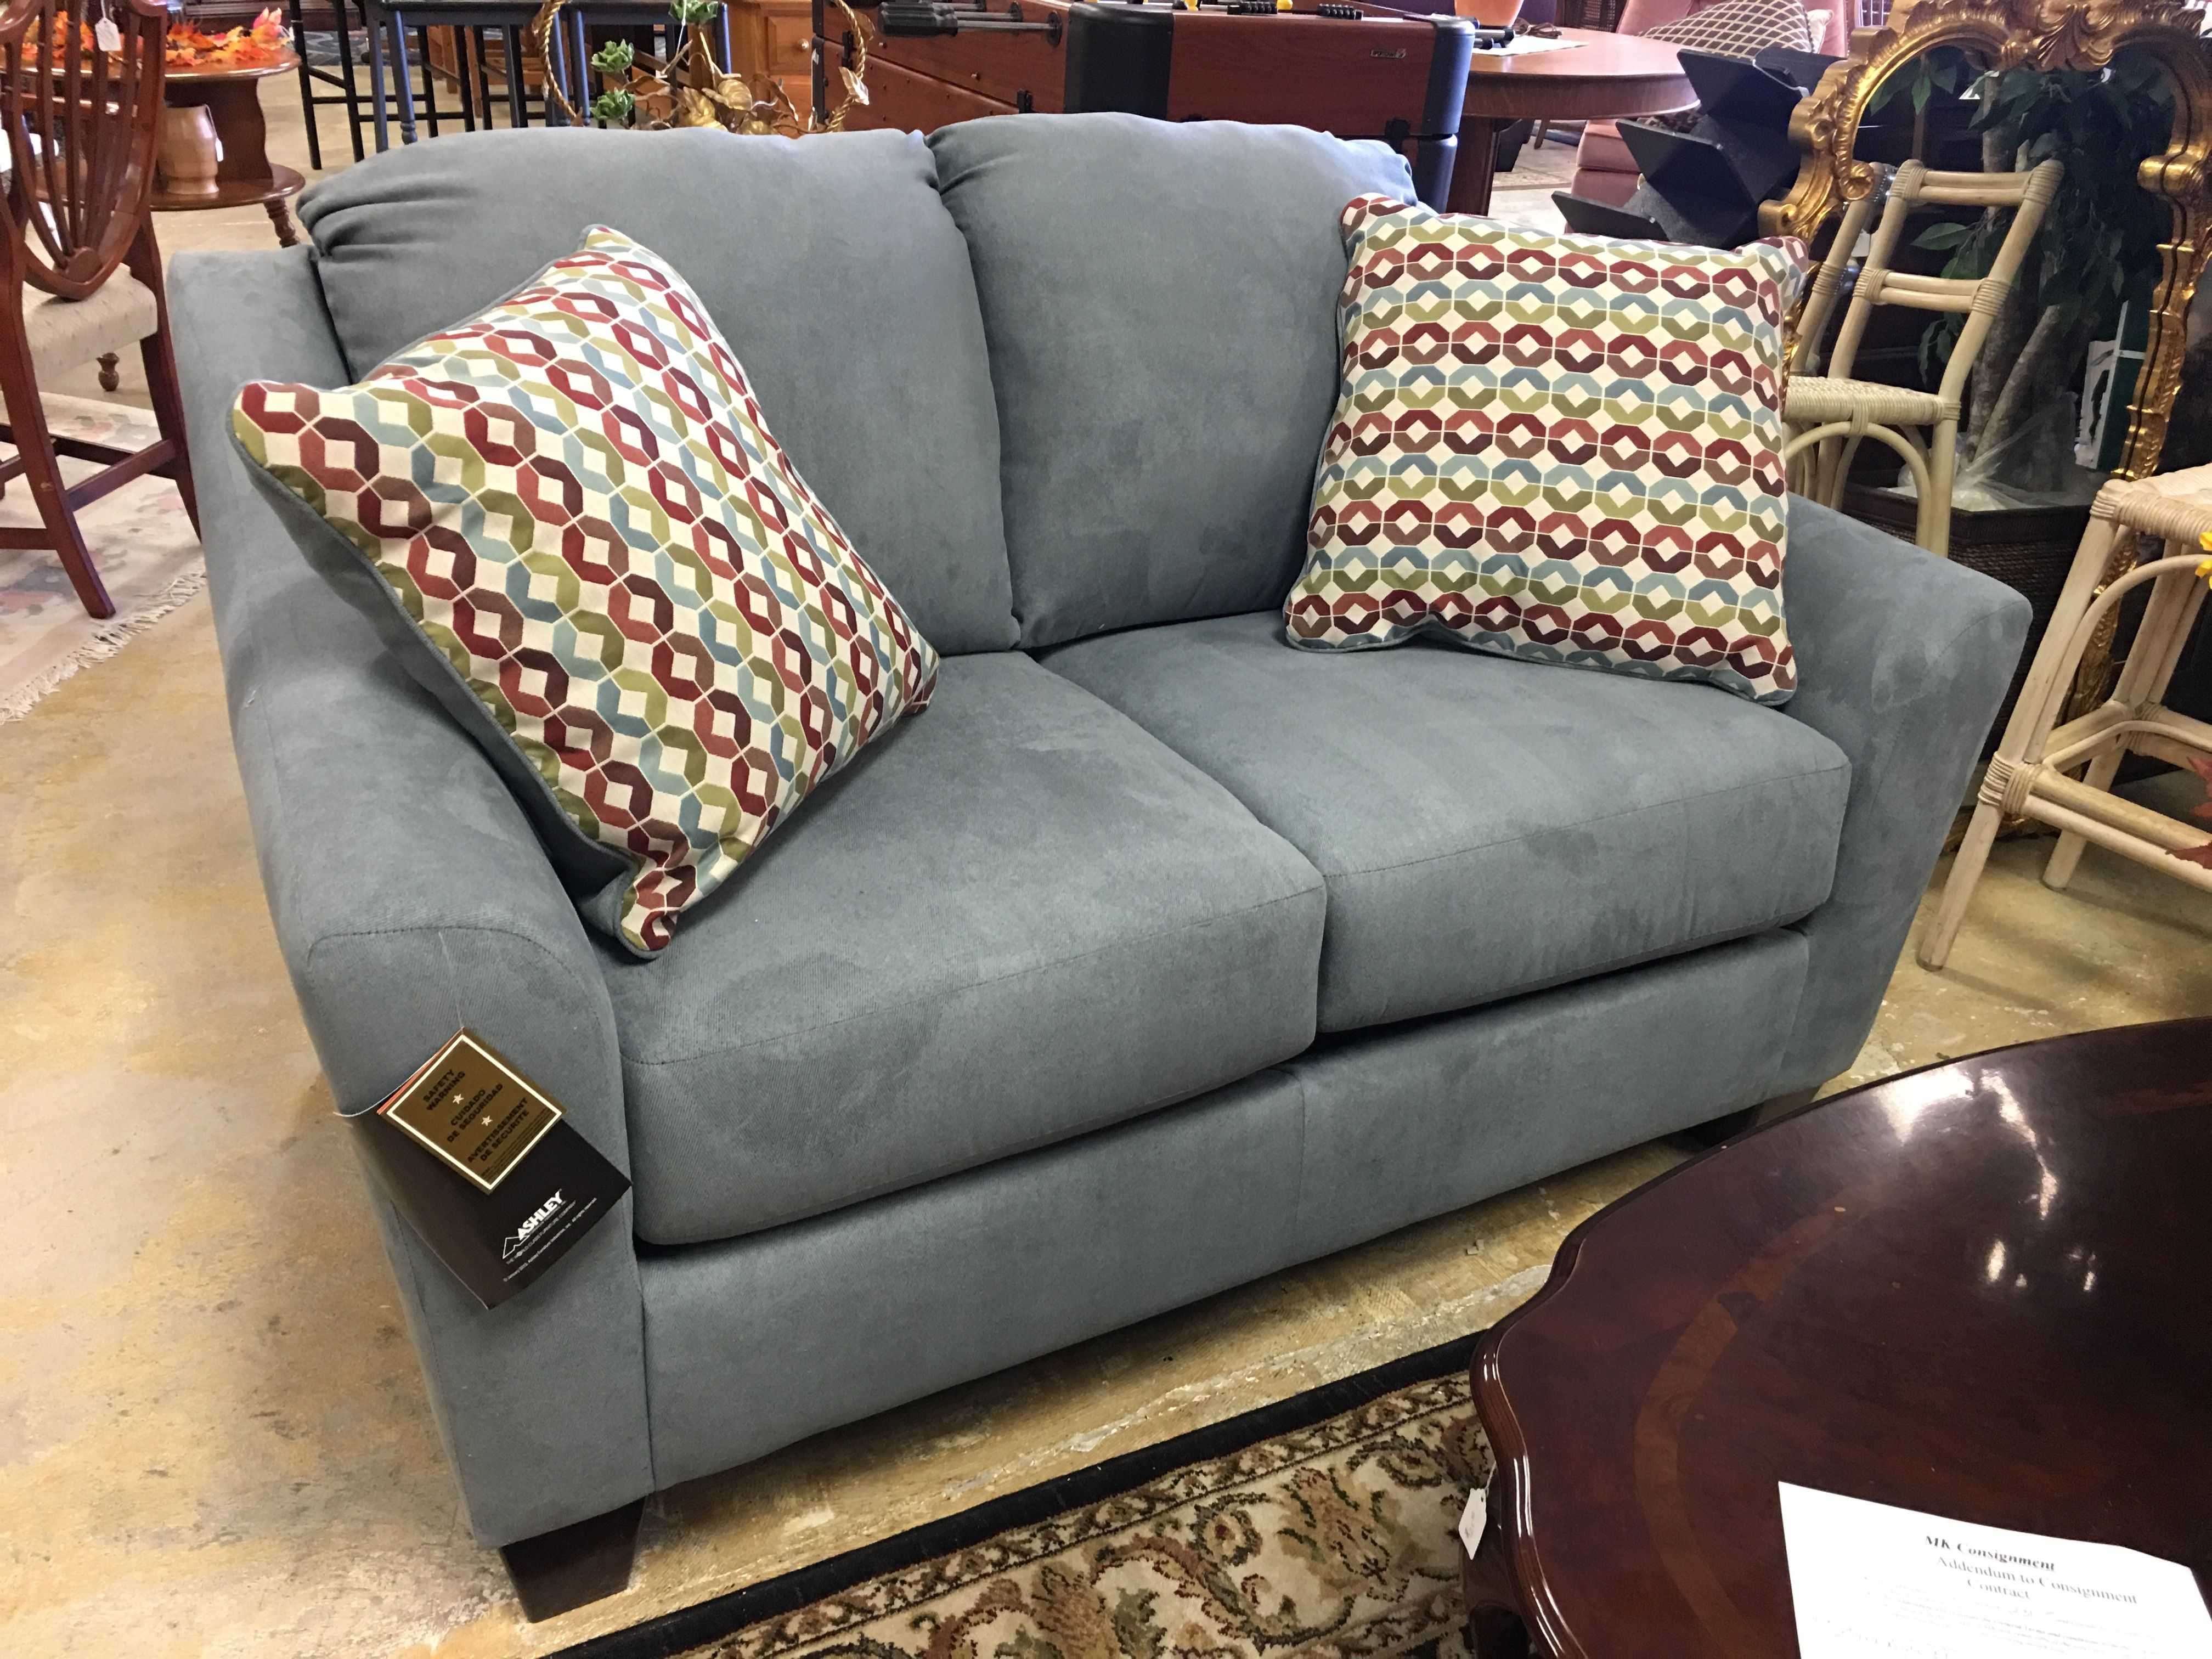 Come Check Out Mk Consignment West 8542 Central Wichita Ks Not Local Our Online Inventory For Design